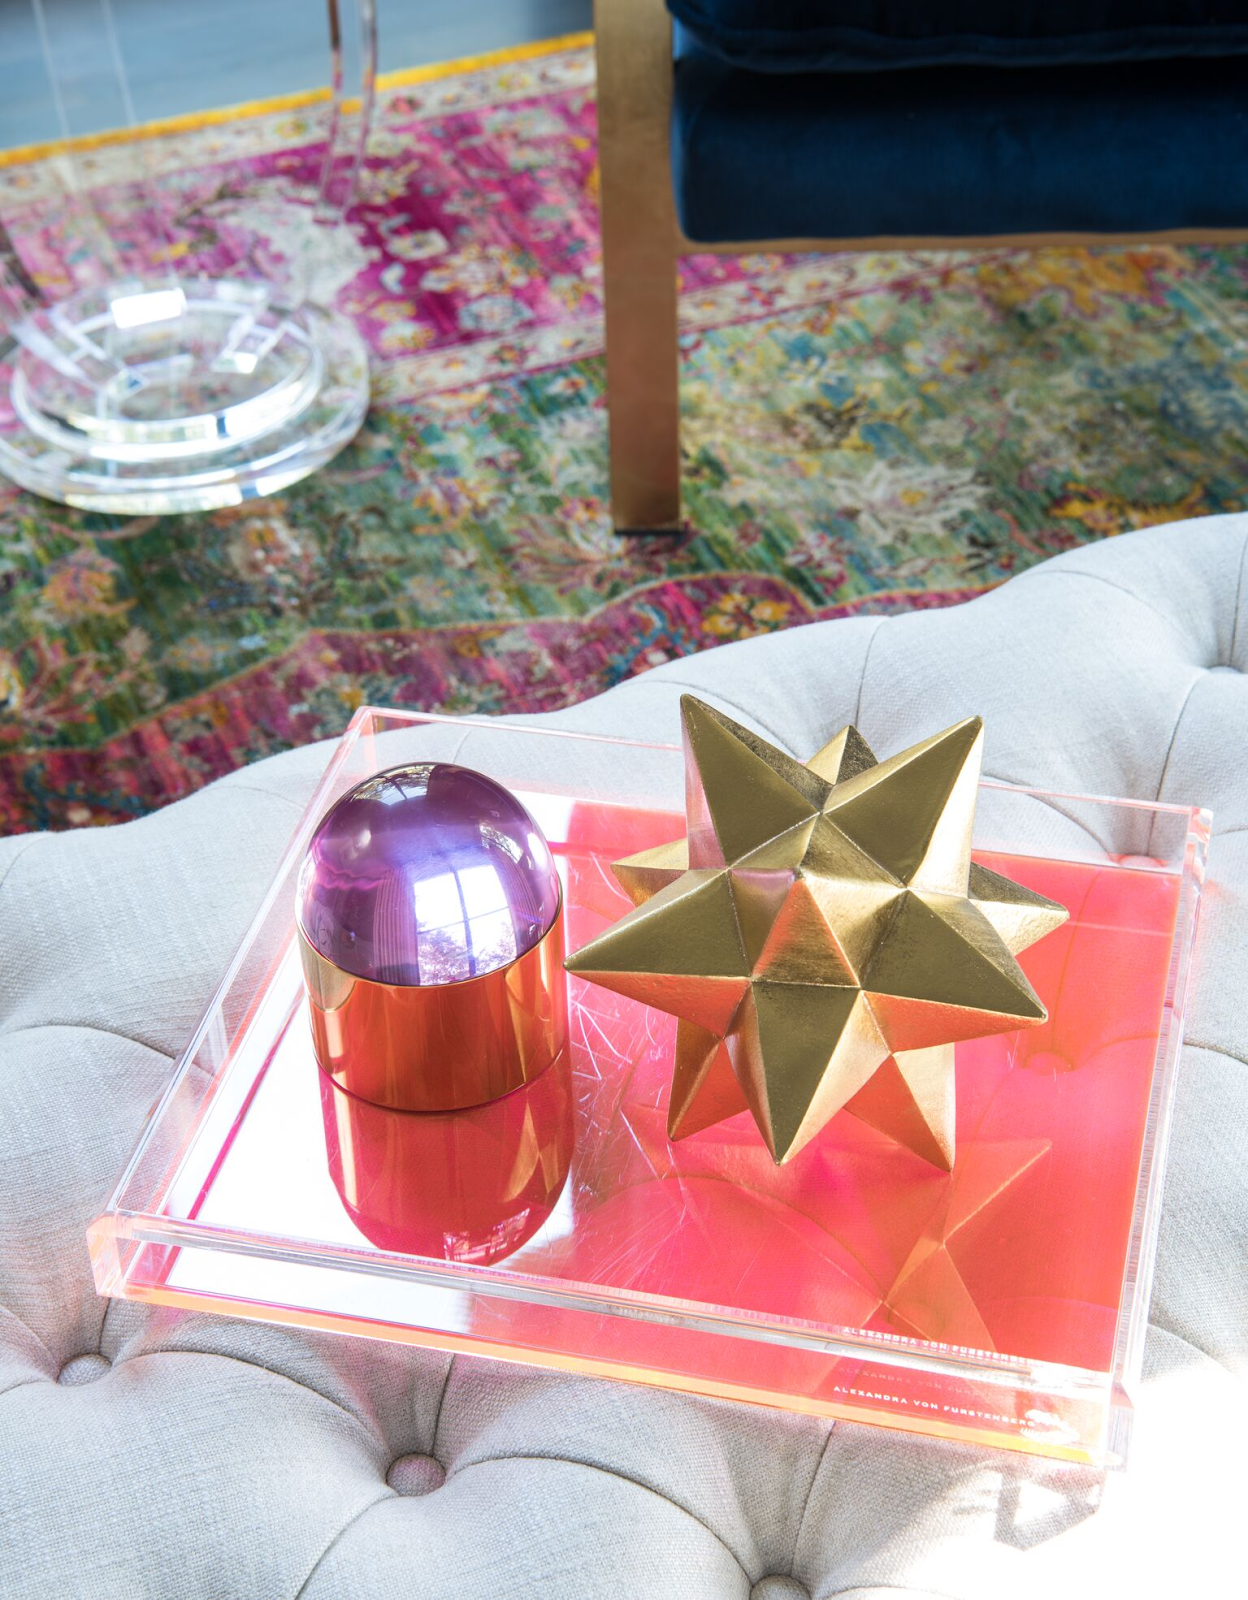 Gold geometric star and acrylic tray accessories by Laura U Interior Design